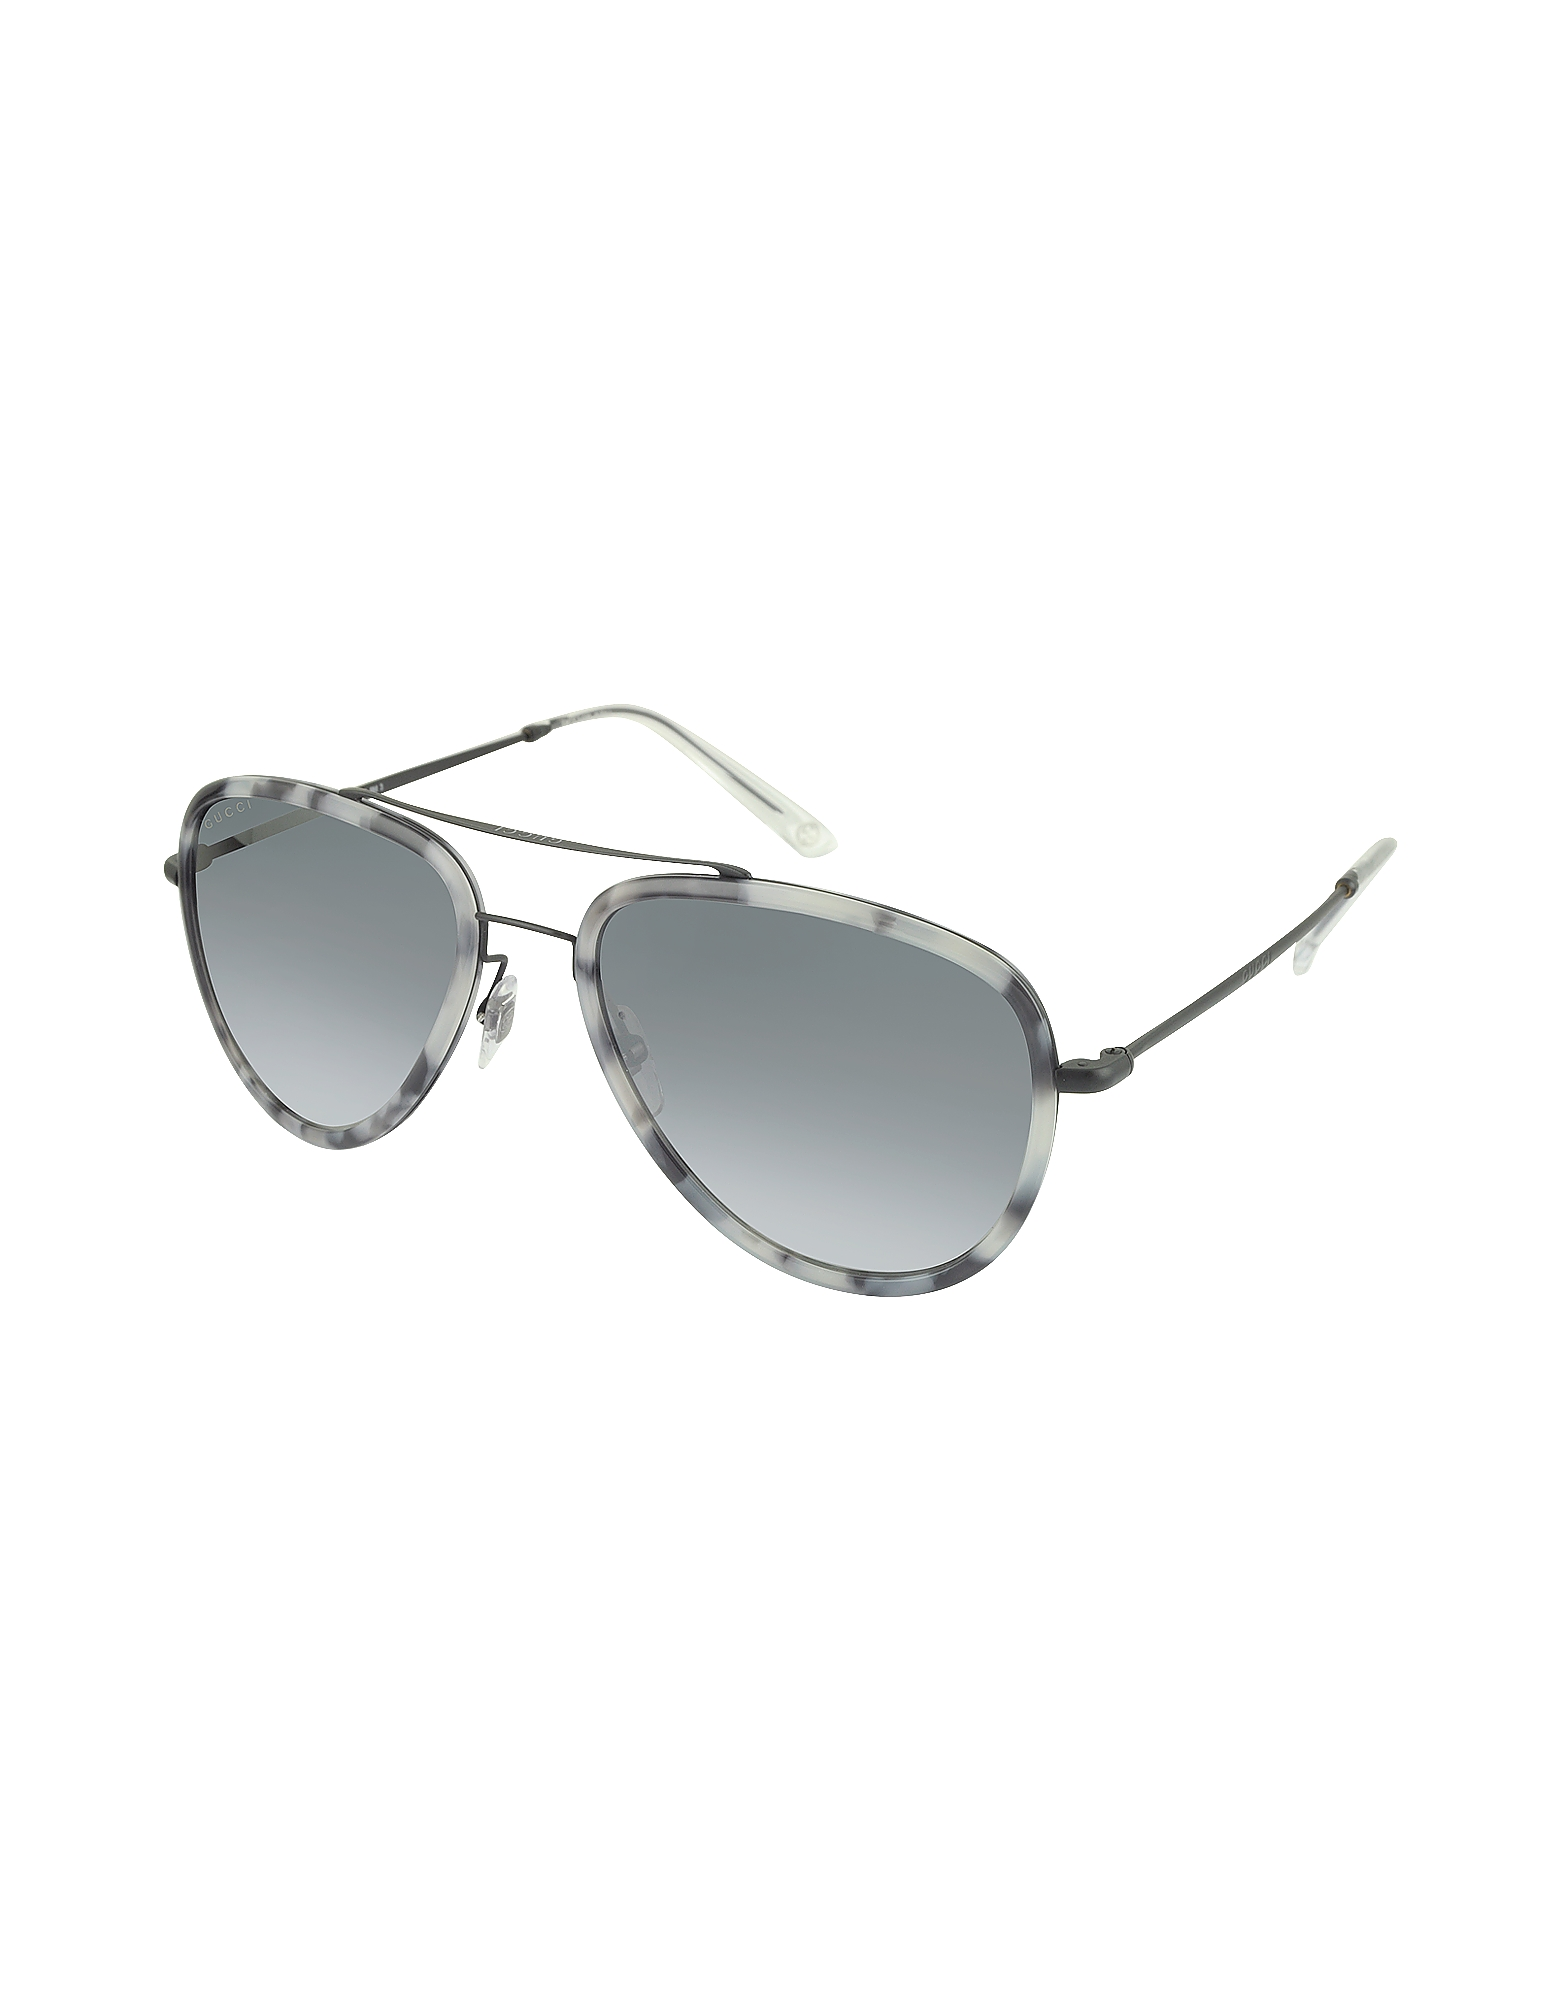 GG 2245/N/S Ultra-Light Acetate Aviator Men Sunglasses от Forzieri.com INT